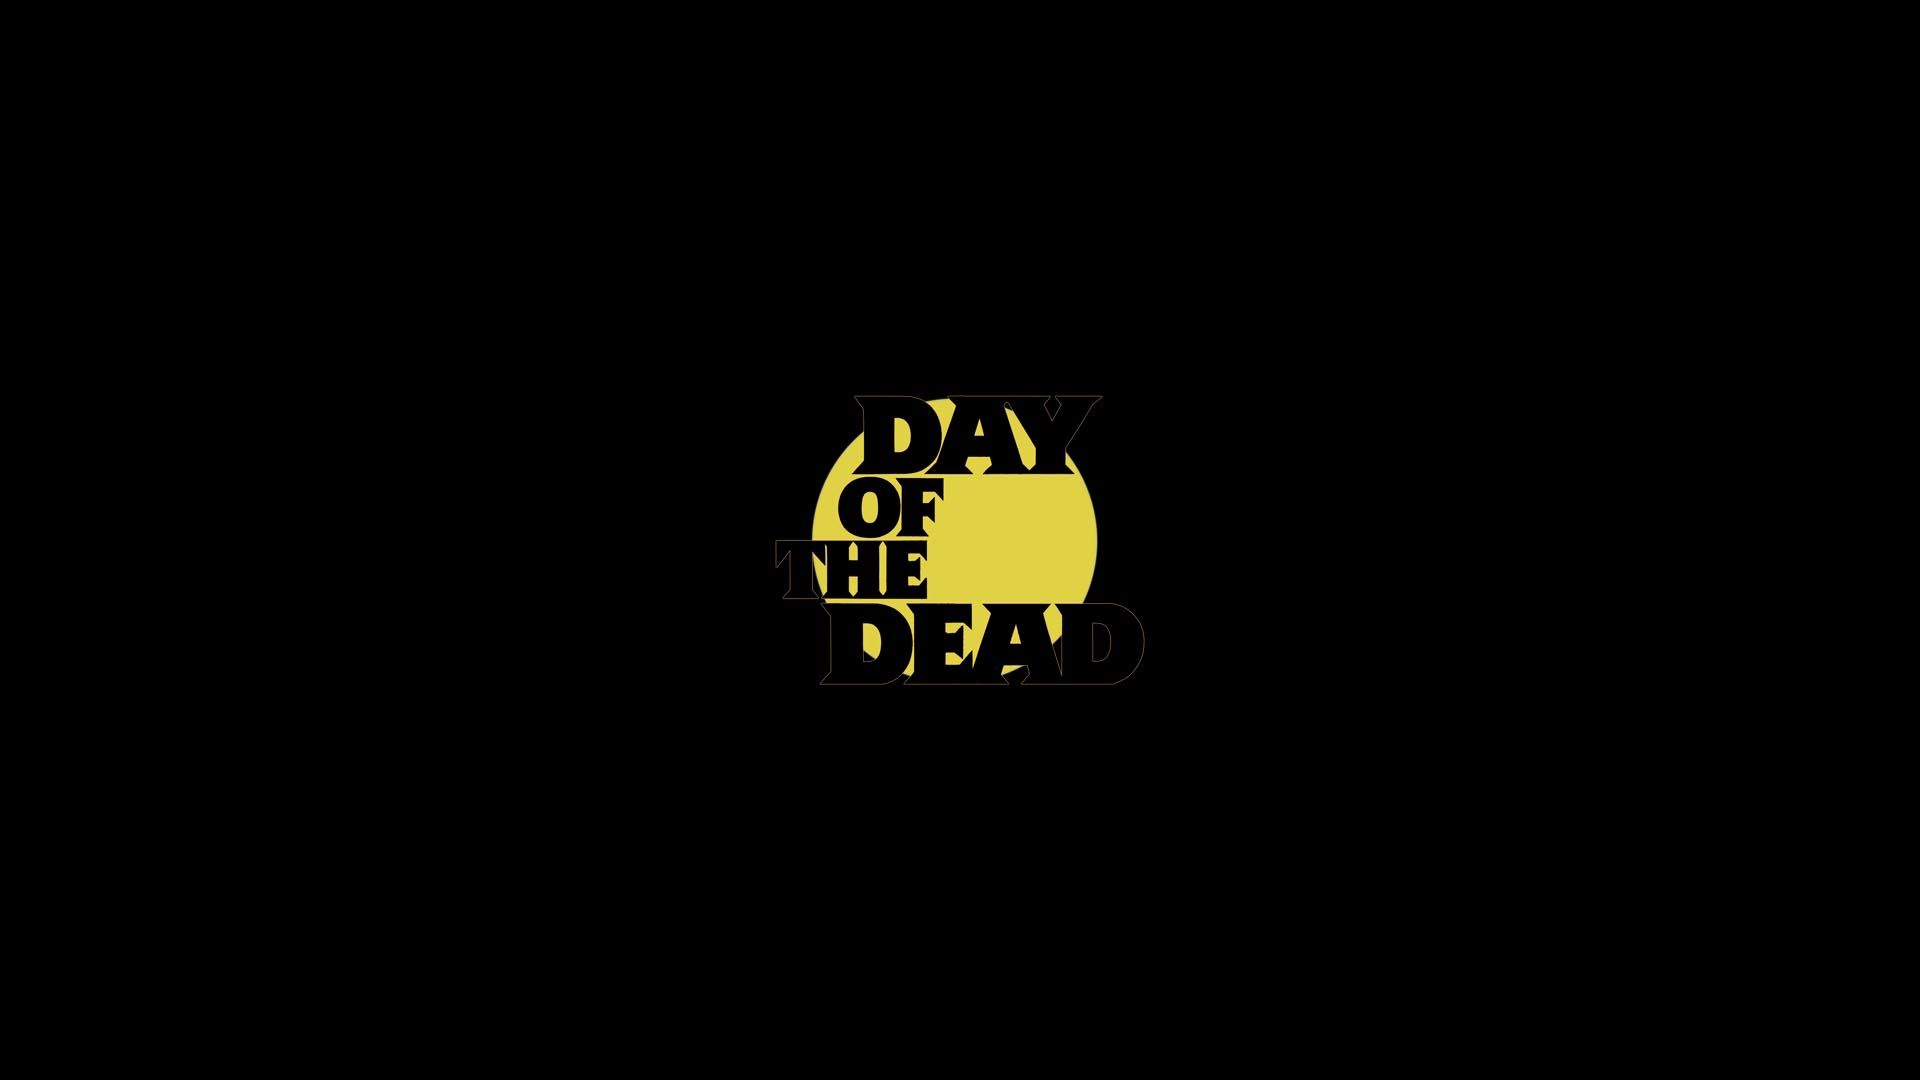 day of dead iphone wallpapers - wallpapersafari